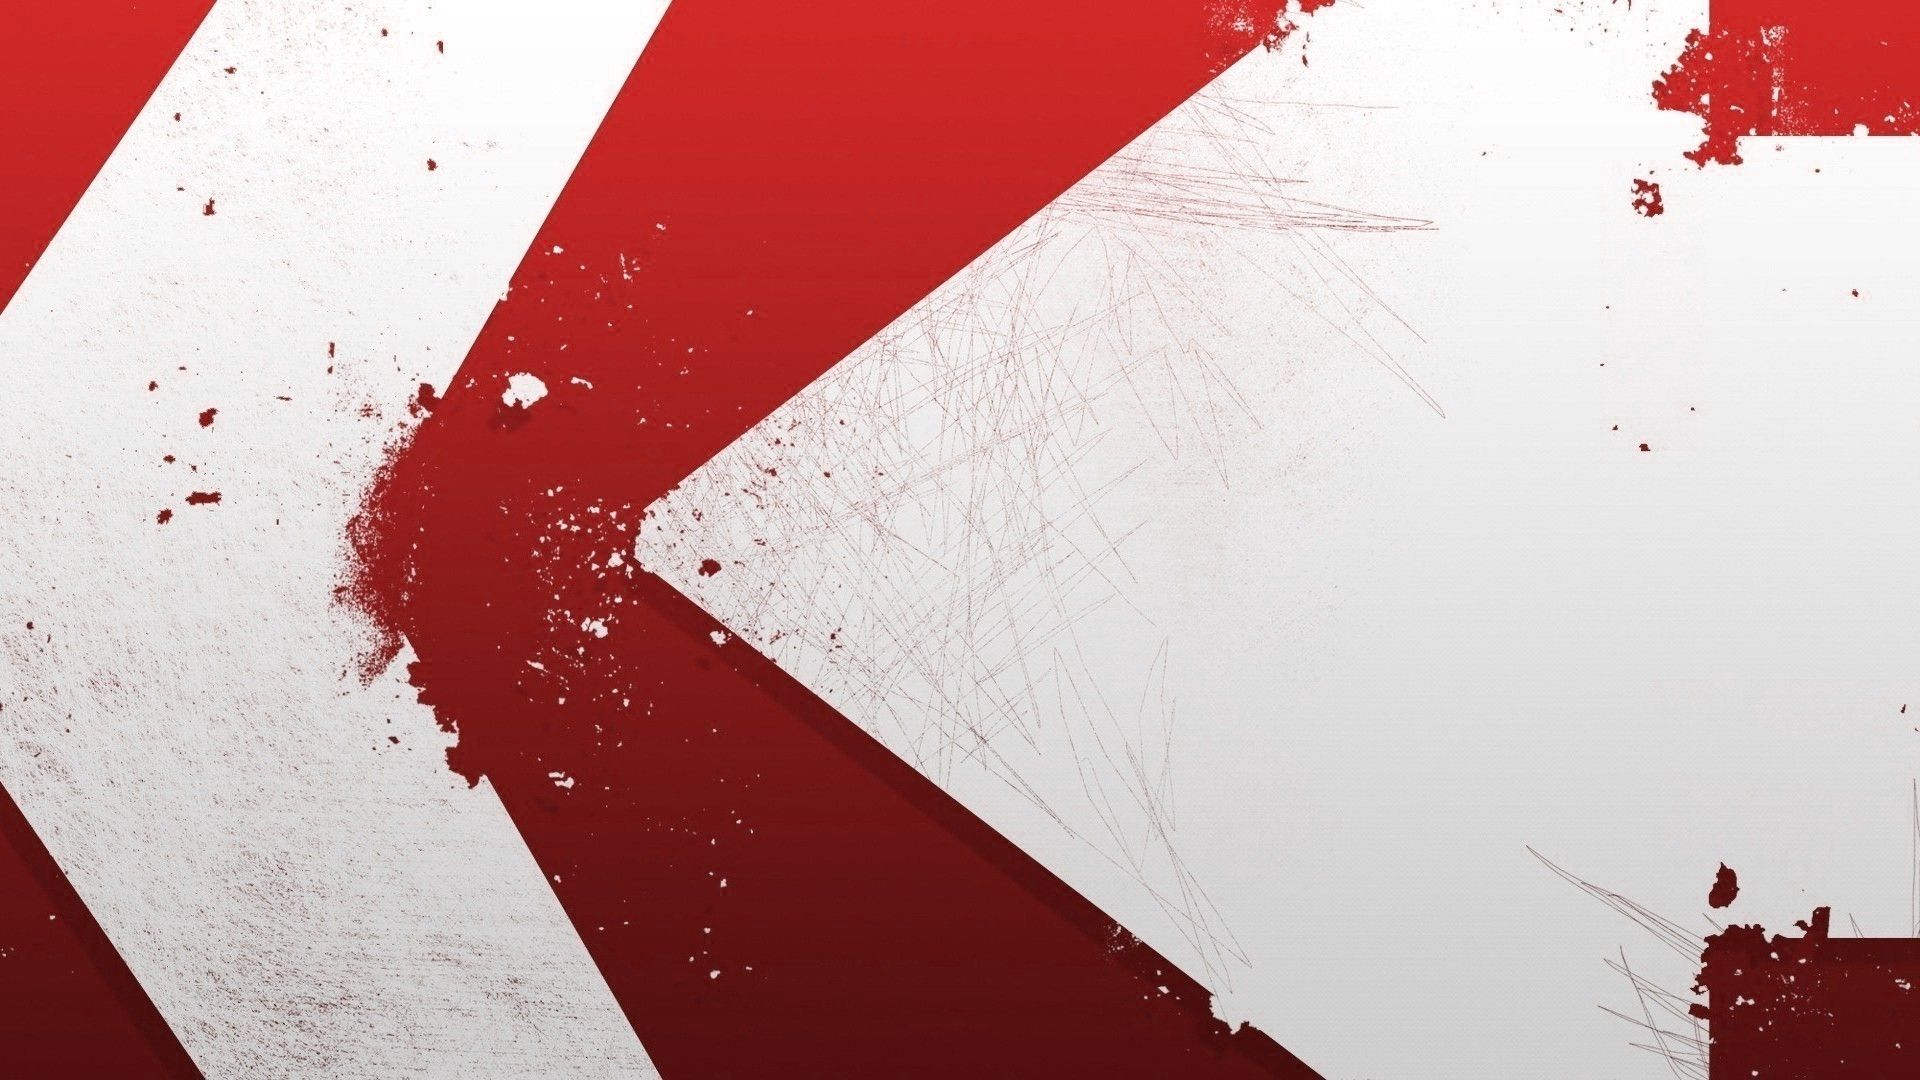 10 Latest Red And White Hd Wallpaper Full Hd 1920 1080 For Pc Desktop Red And White Wallpaper White Background Wallpaper Abstract Wallpaper